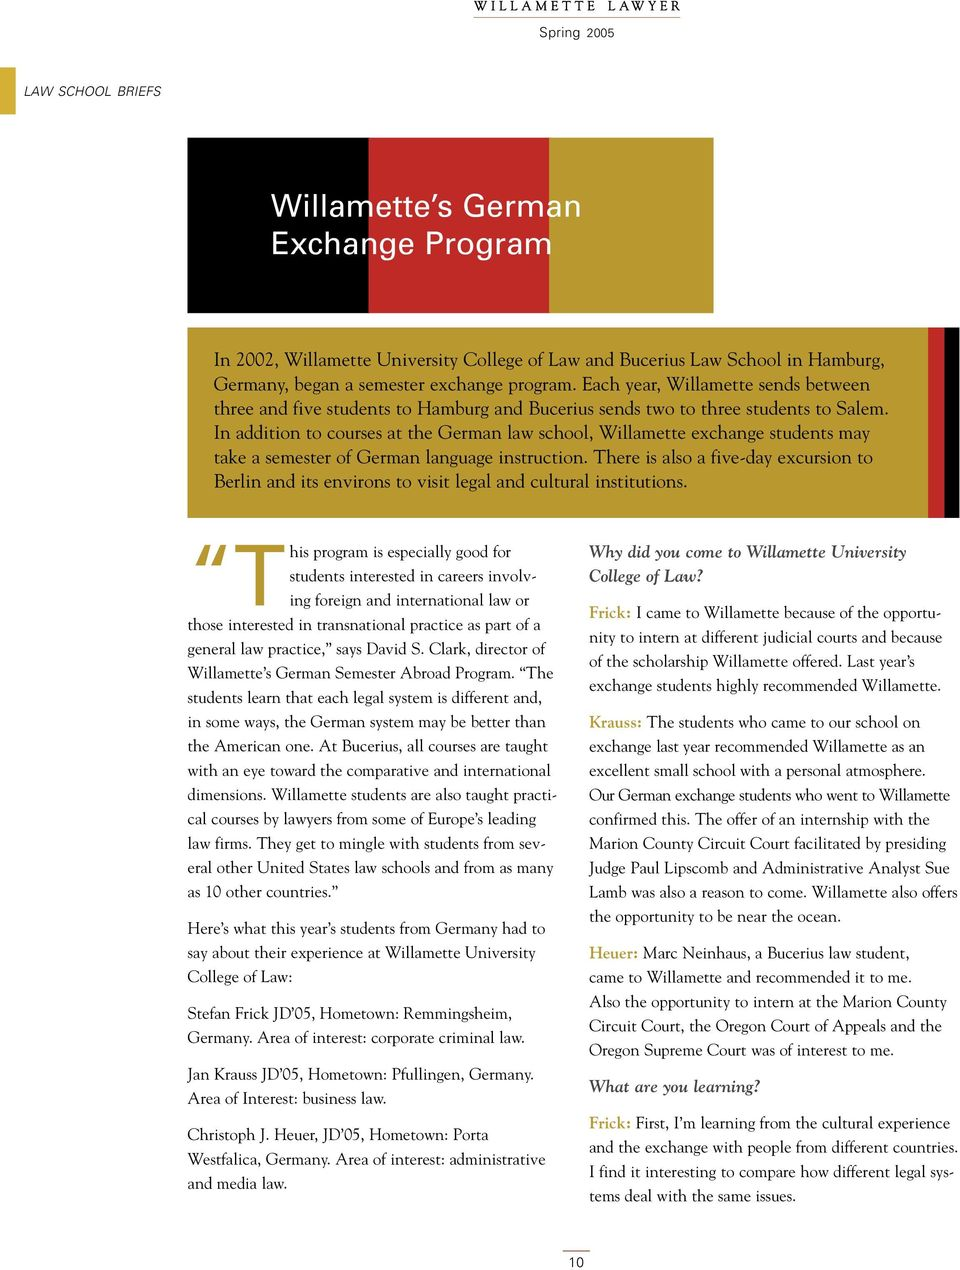 In addition to courses at the German law school, Willamette exchange students may take a semester of German language instruction.